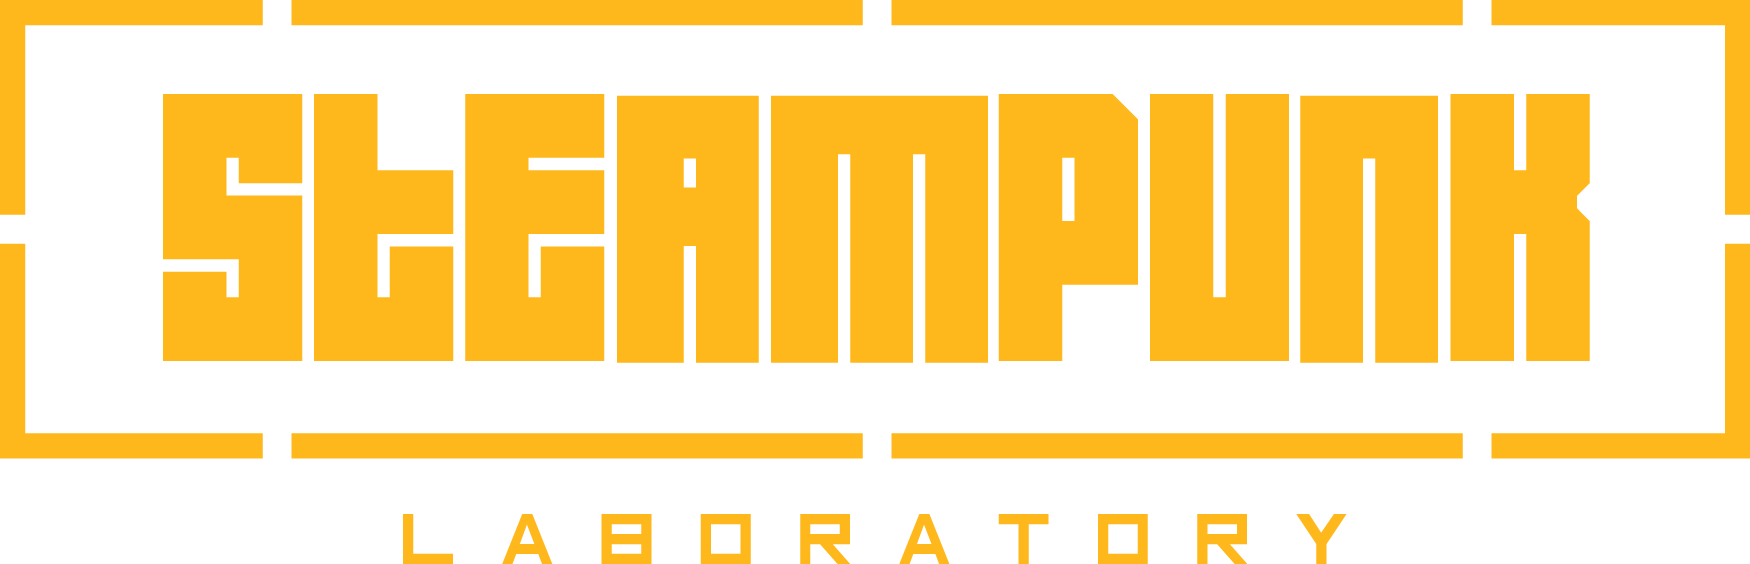 Steampunk STPK - logo3 (for use on white background).jpg